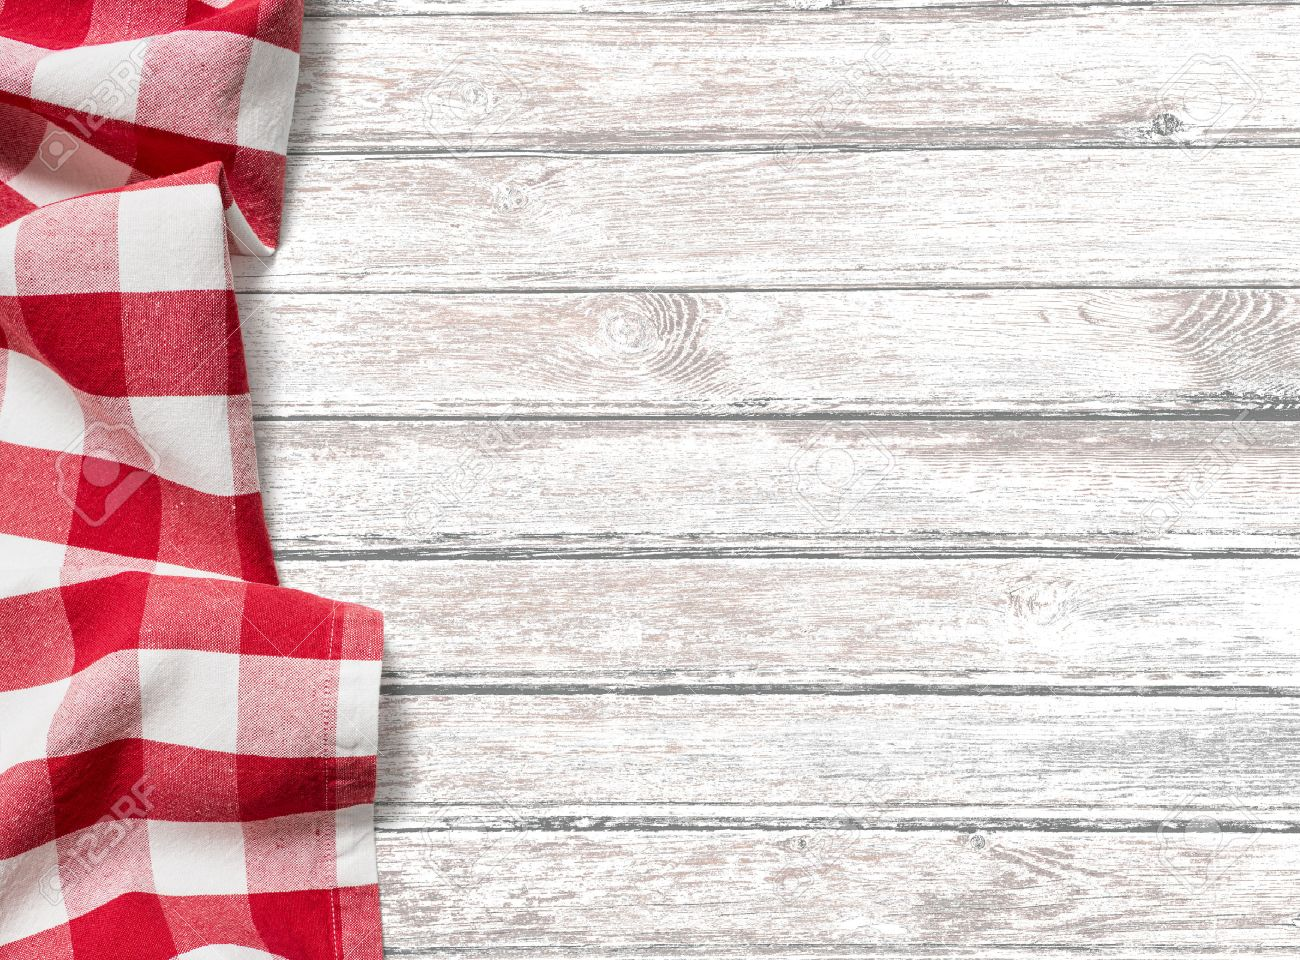 kitchen table background with red picnic cloth stock photo picture